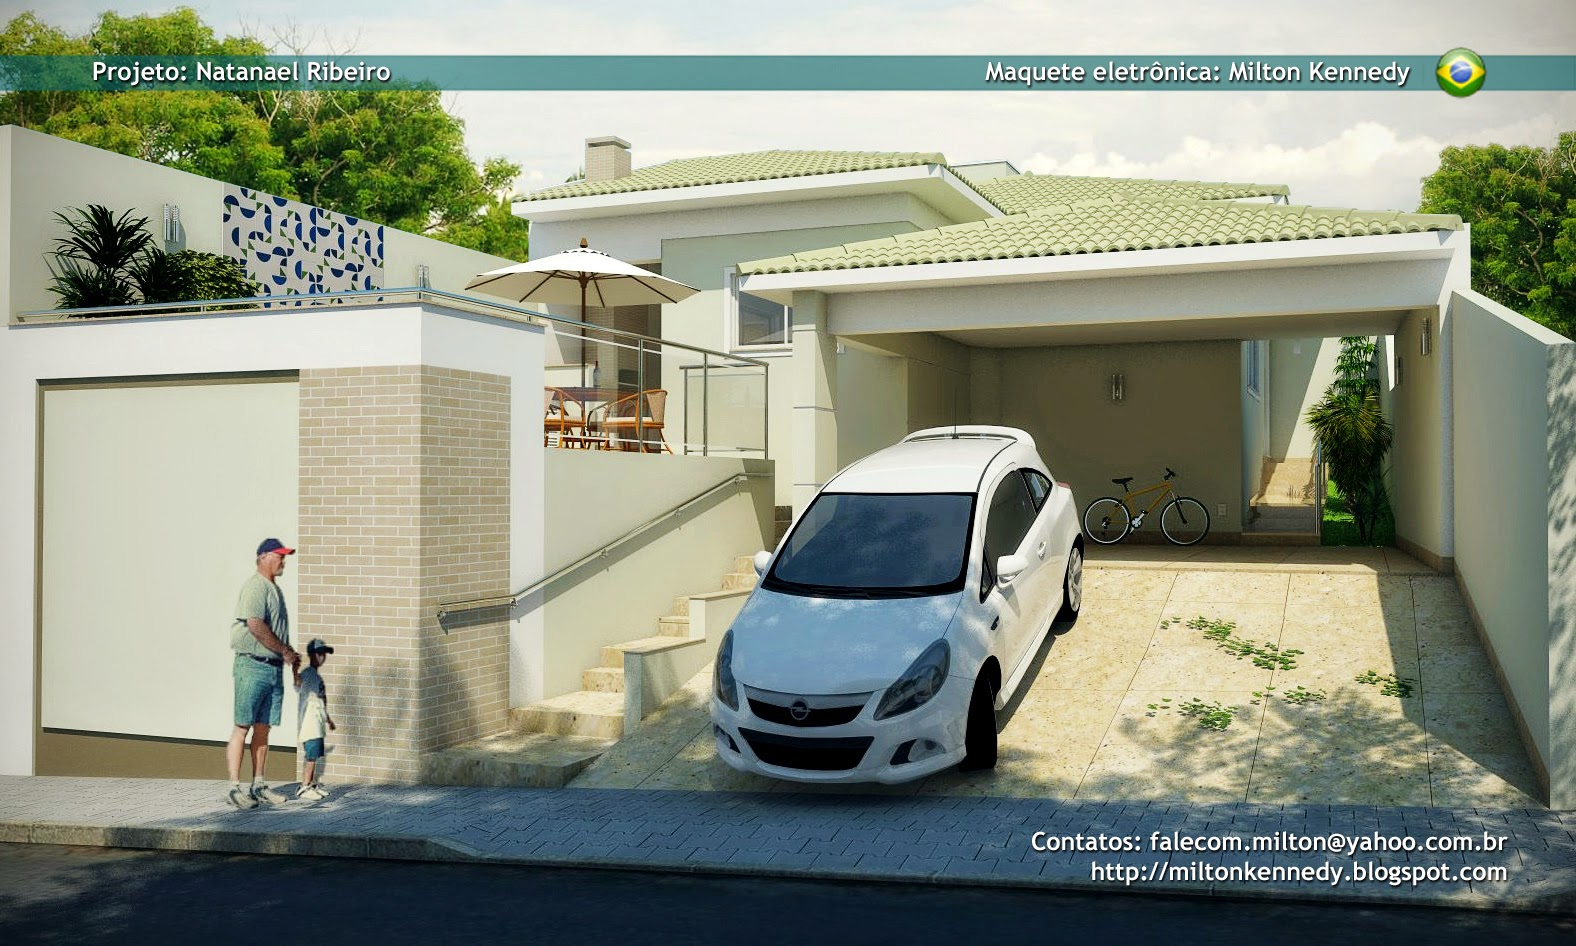 Maquete Sketchup Vray